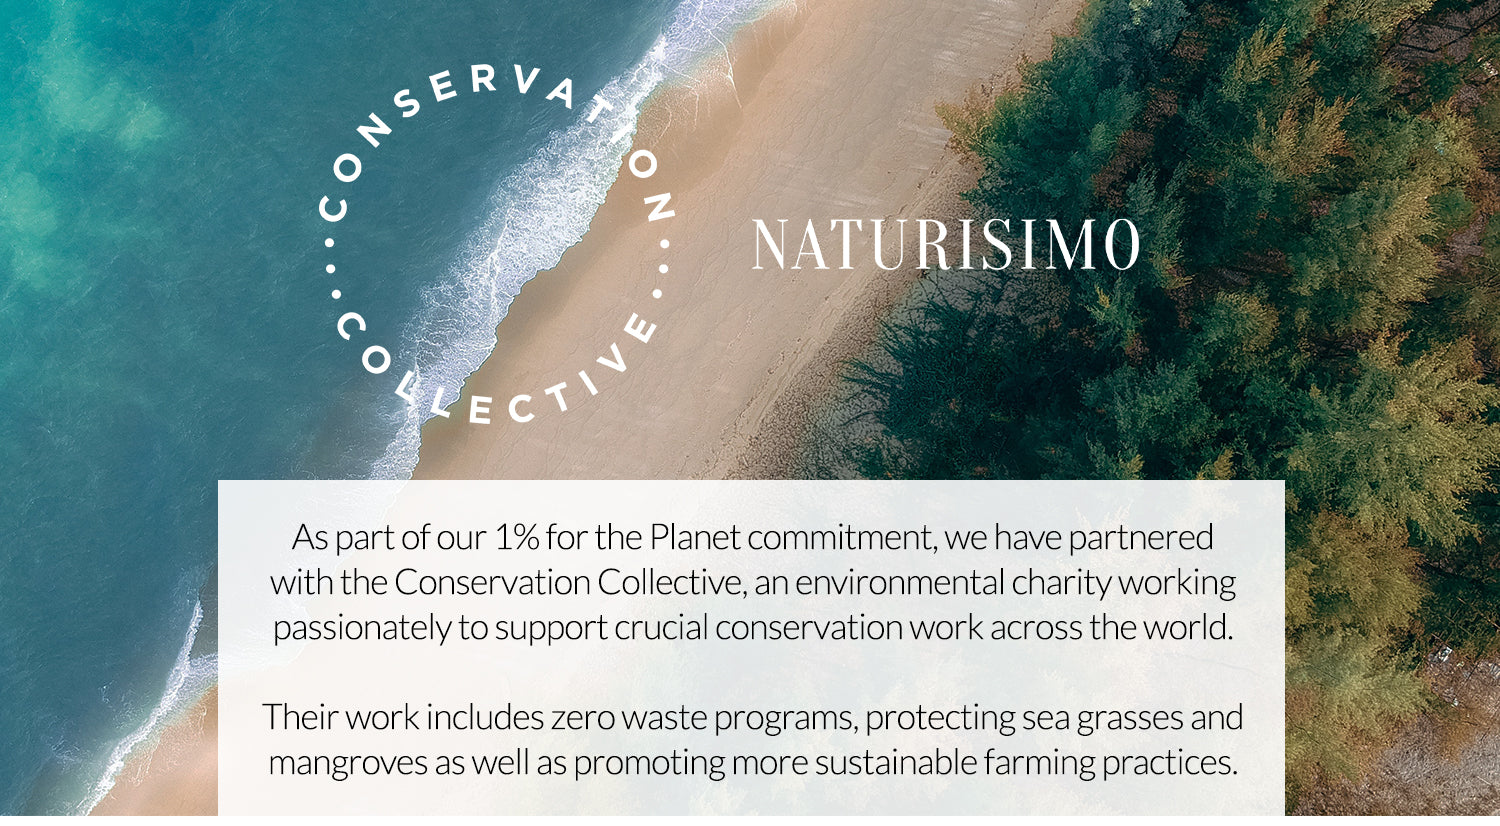 Conservation Colective and Naturisimo